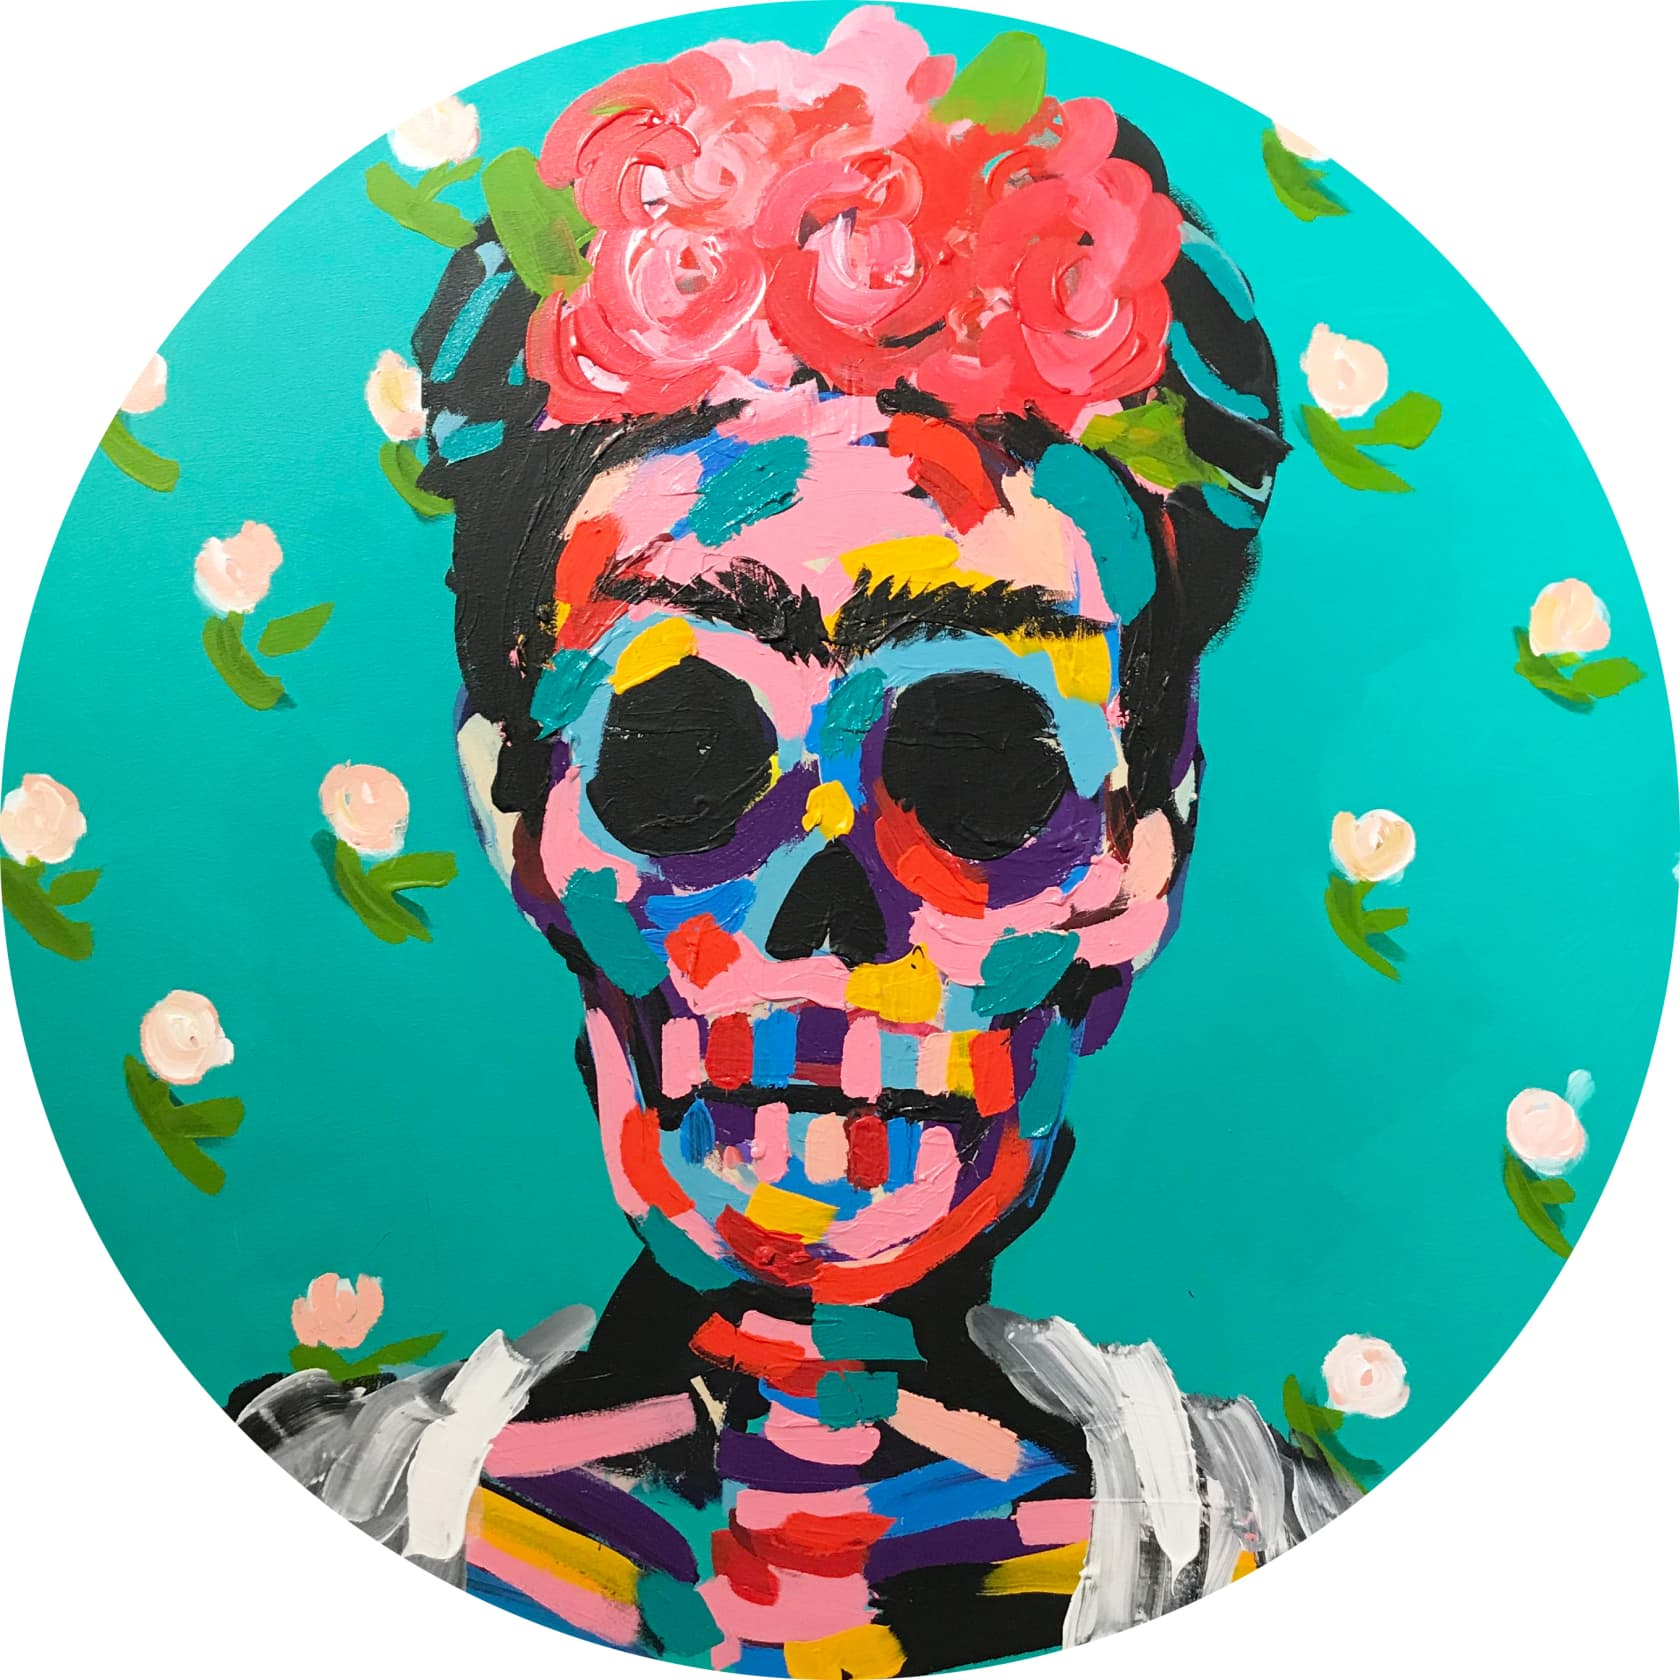 Bradley Theodore, Frida in Flowers, 2017